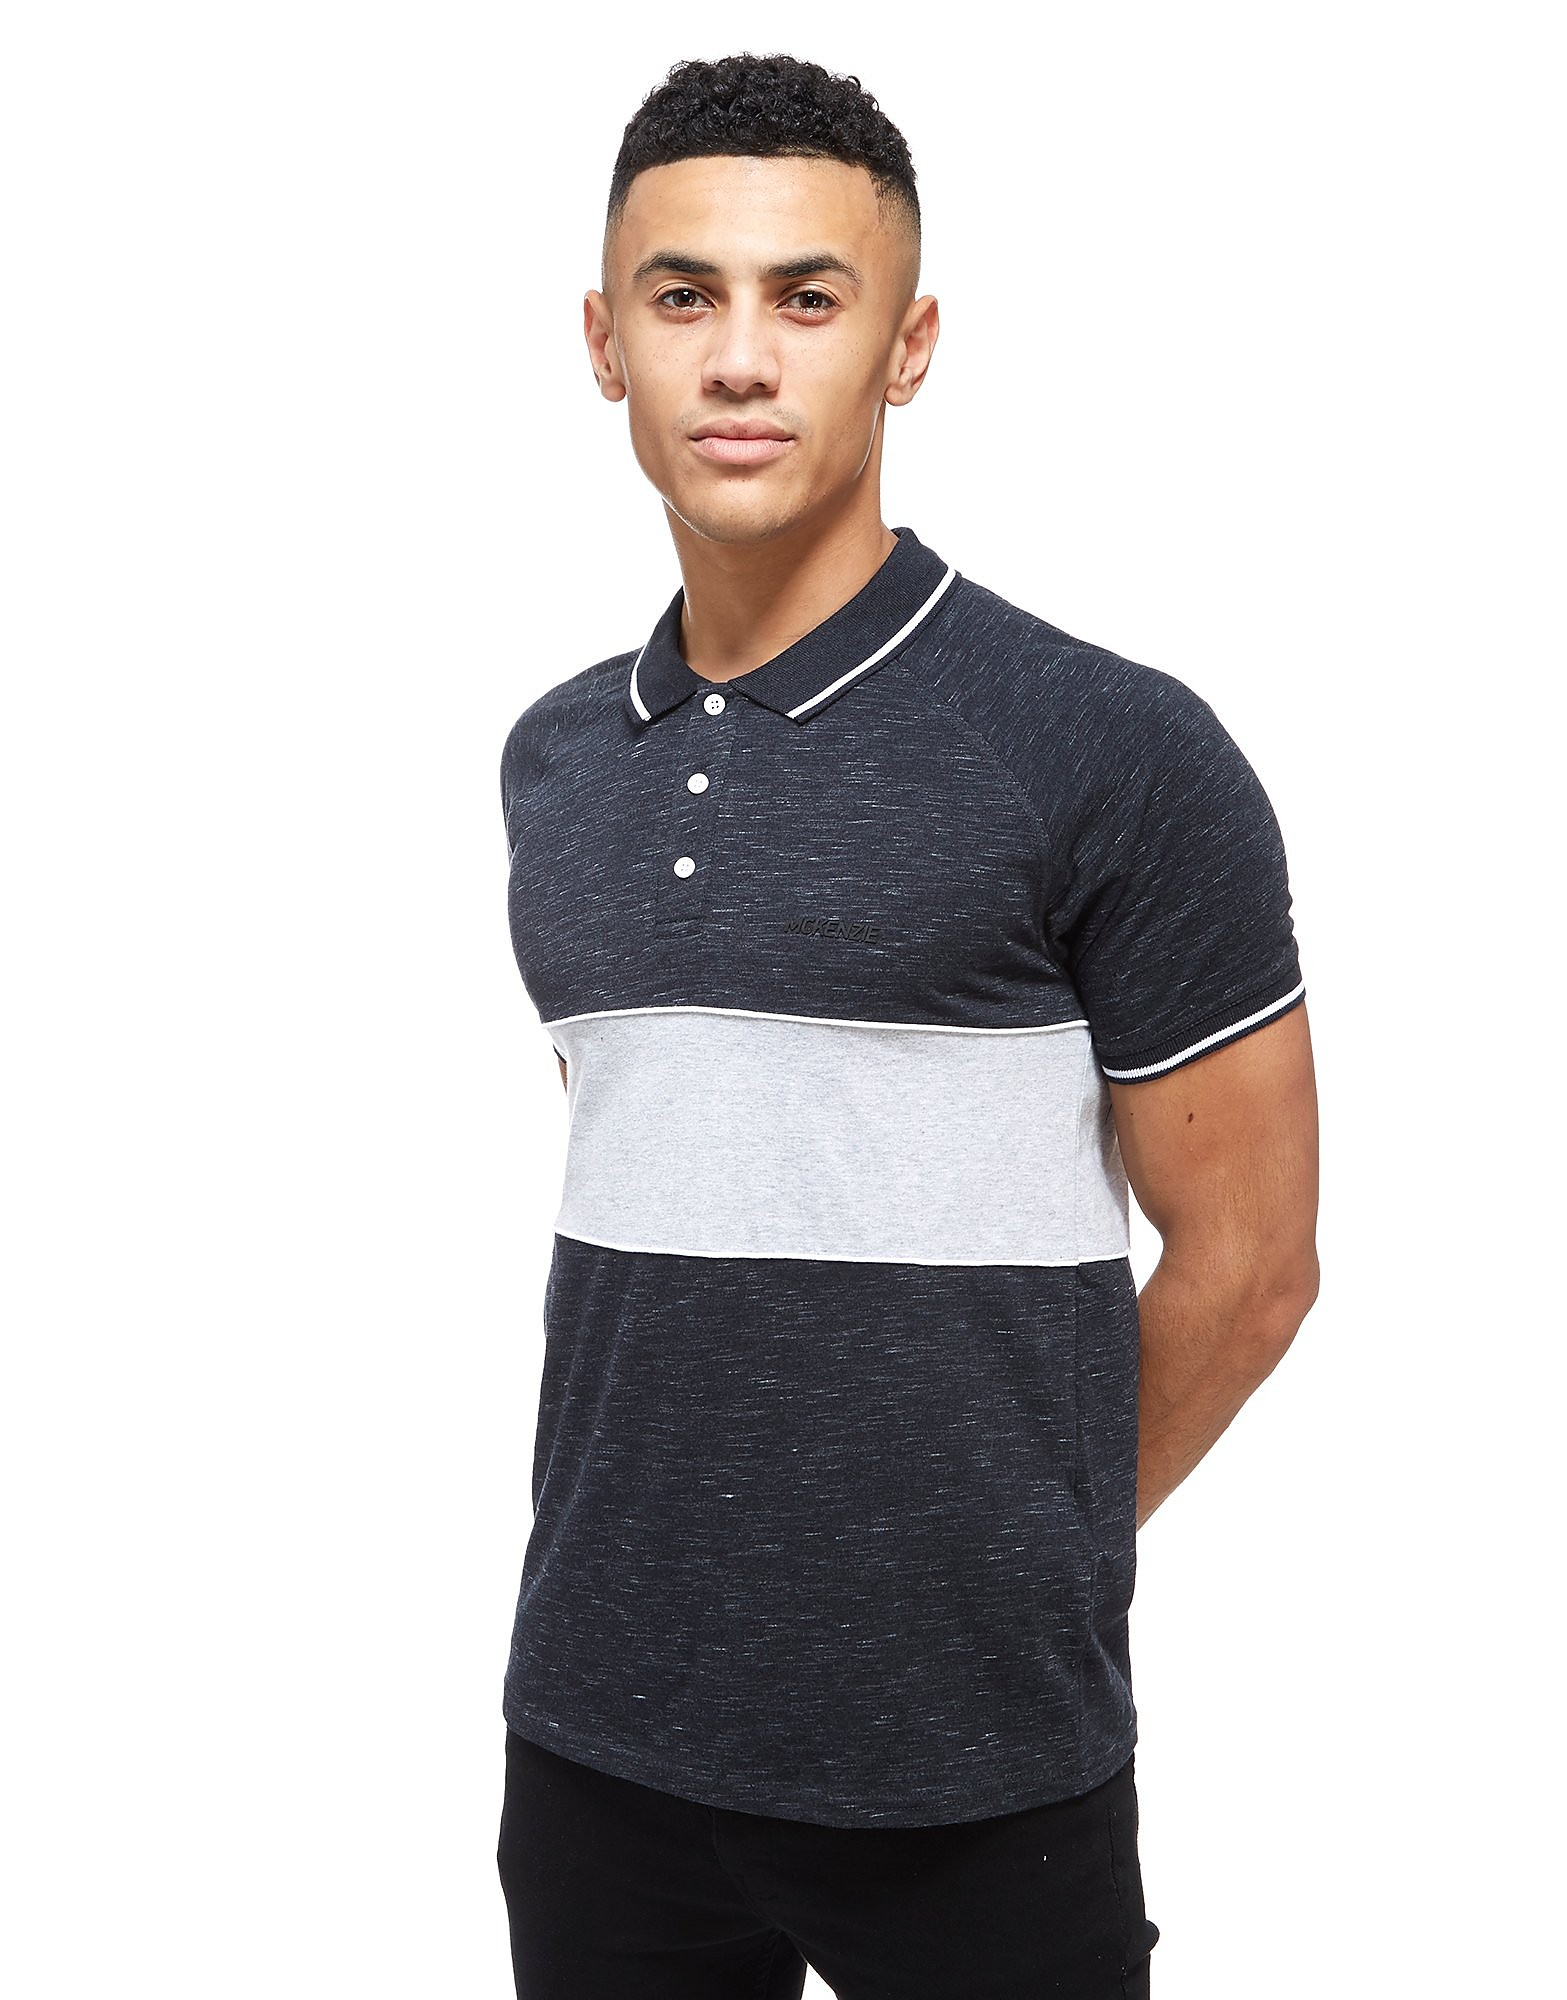 McKenzie Chimera Polo Shirt